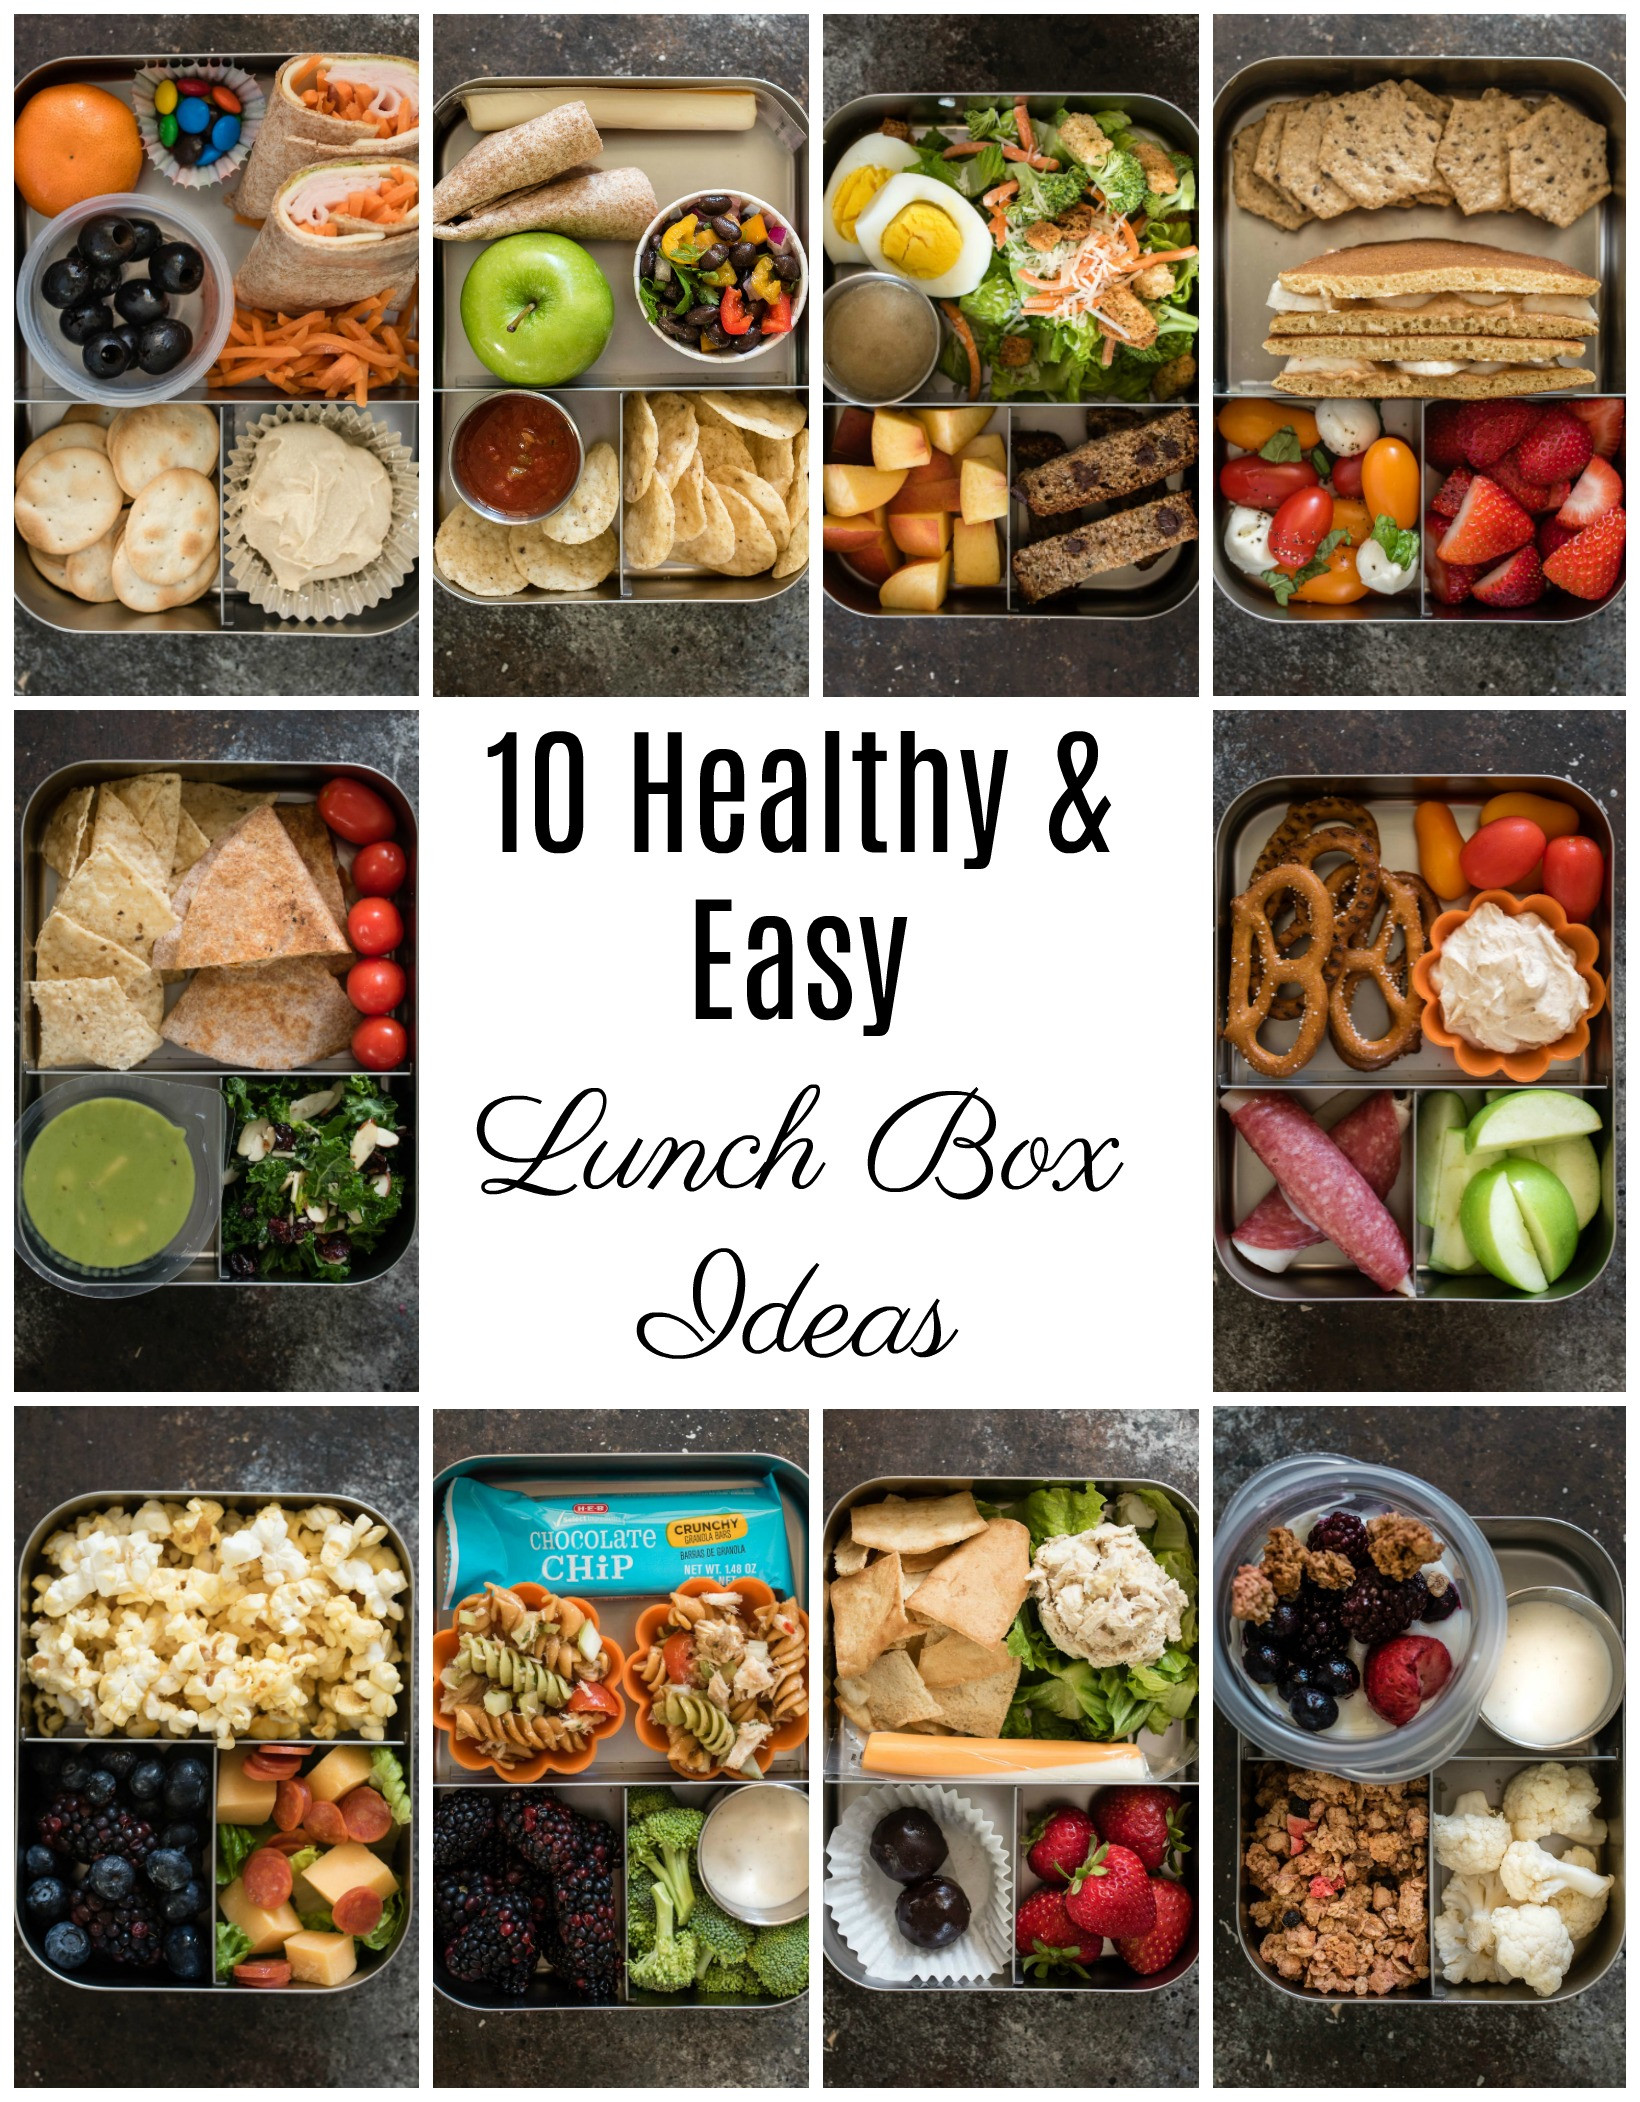 Easy Healthy Lunches  10 Healthy Lunch Box Ideas